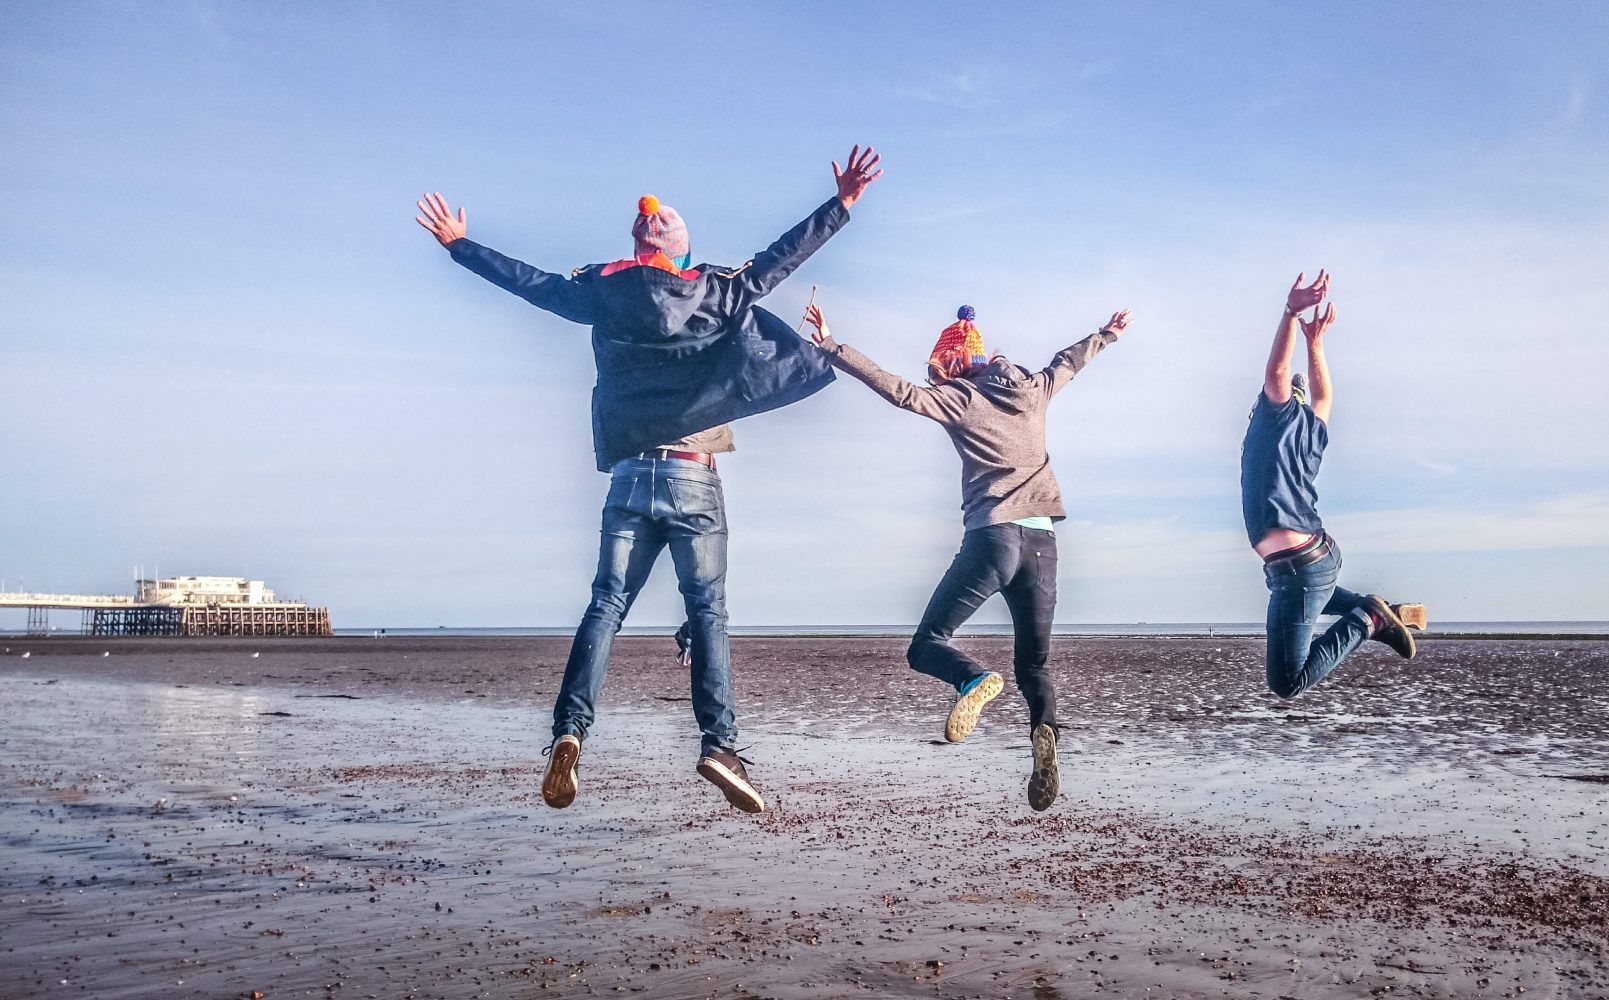 Three people jumping in the air at Worthing beach